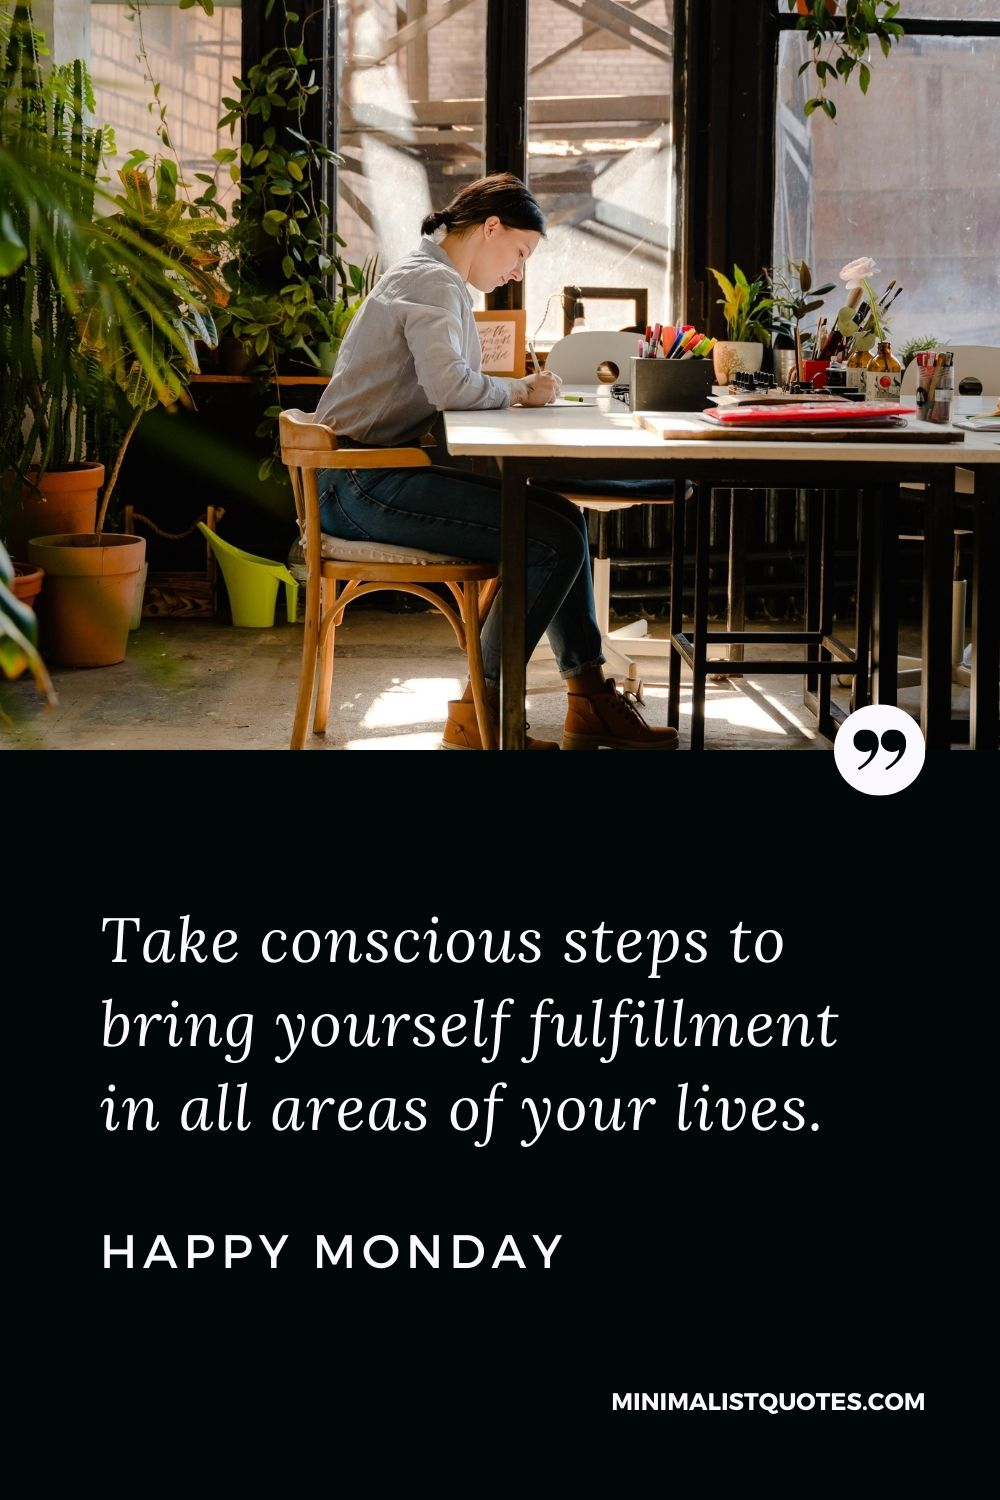 Monday Motivation quote & message with image: Take conscious steps to bring yourself fulfillment in all areas of your lives. Happy Monday!